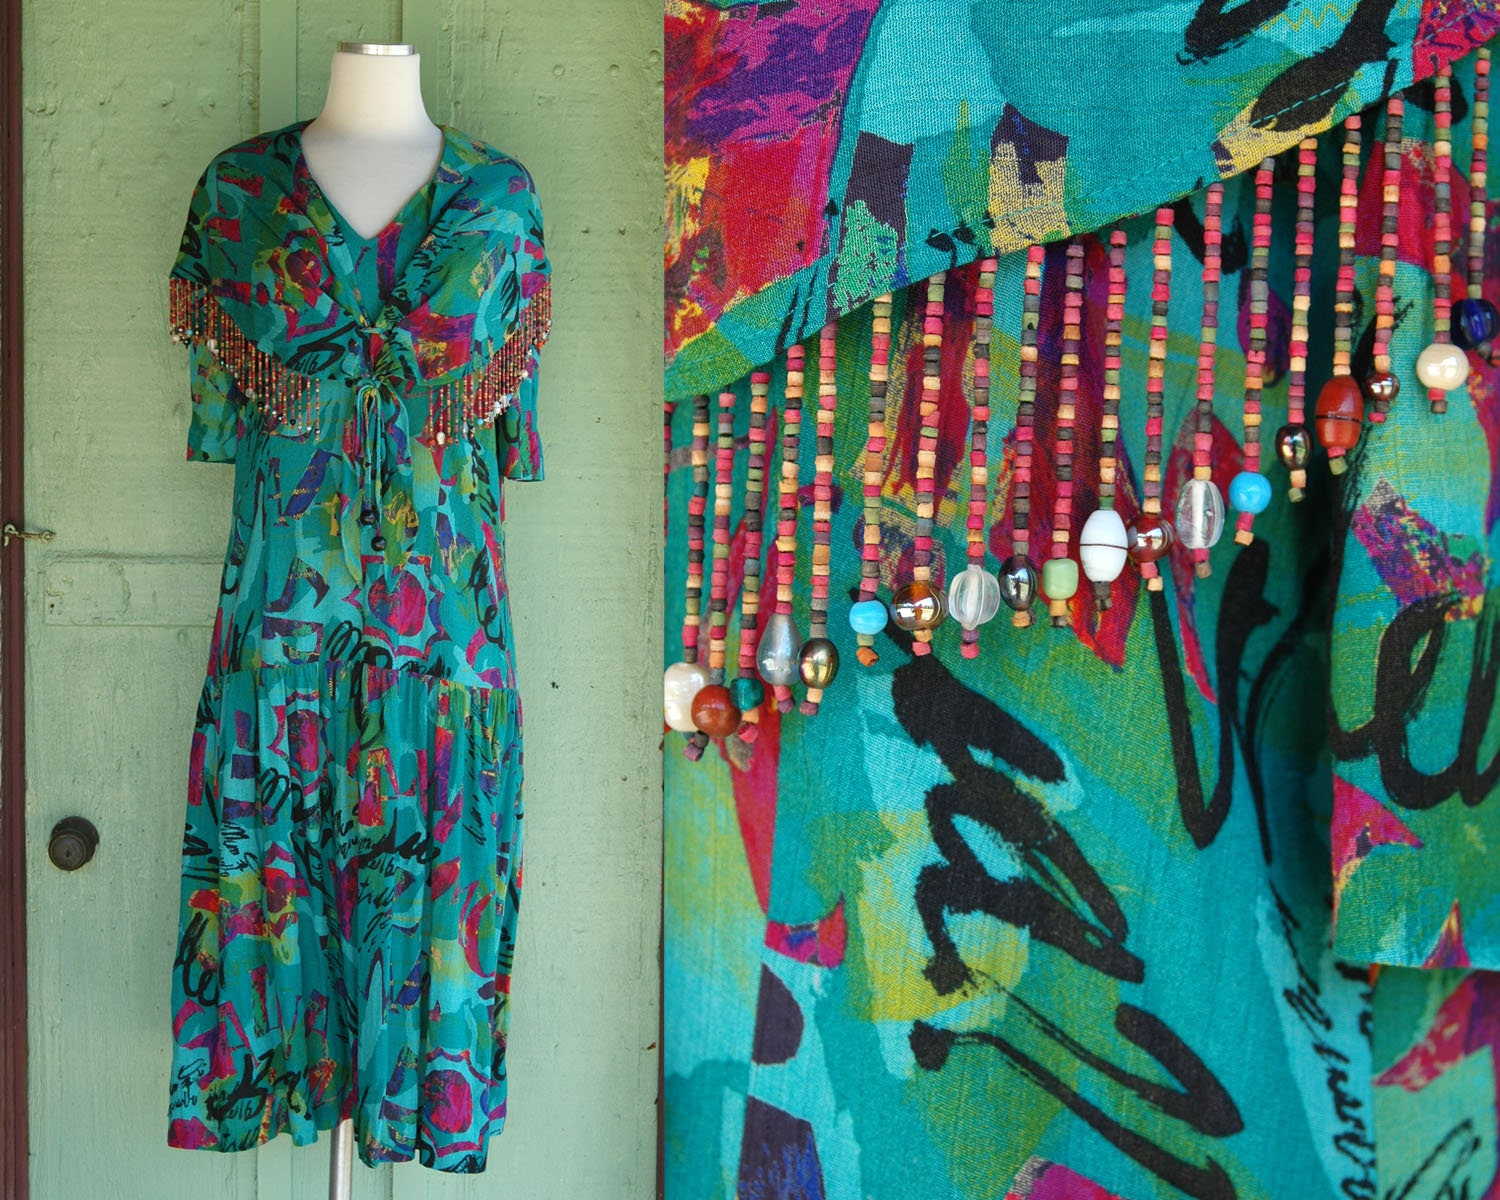 80s Dresses | Casual to Party Dresses 1980S 1990S Green Pink Abstract Print Dress With Beaded Fringe  80S 90S Carole Little Bright Colorful Drop Waist Sailor Collar $0.00 AT vintagedancer.com